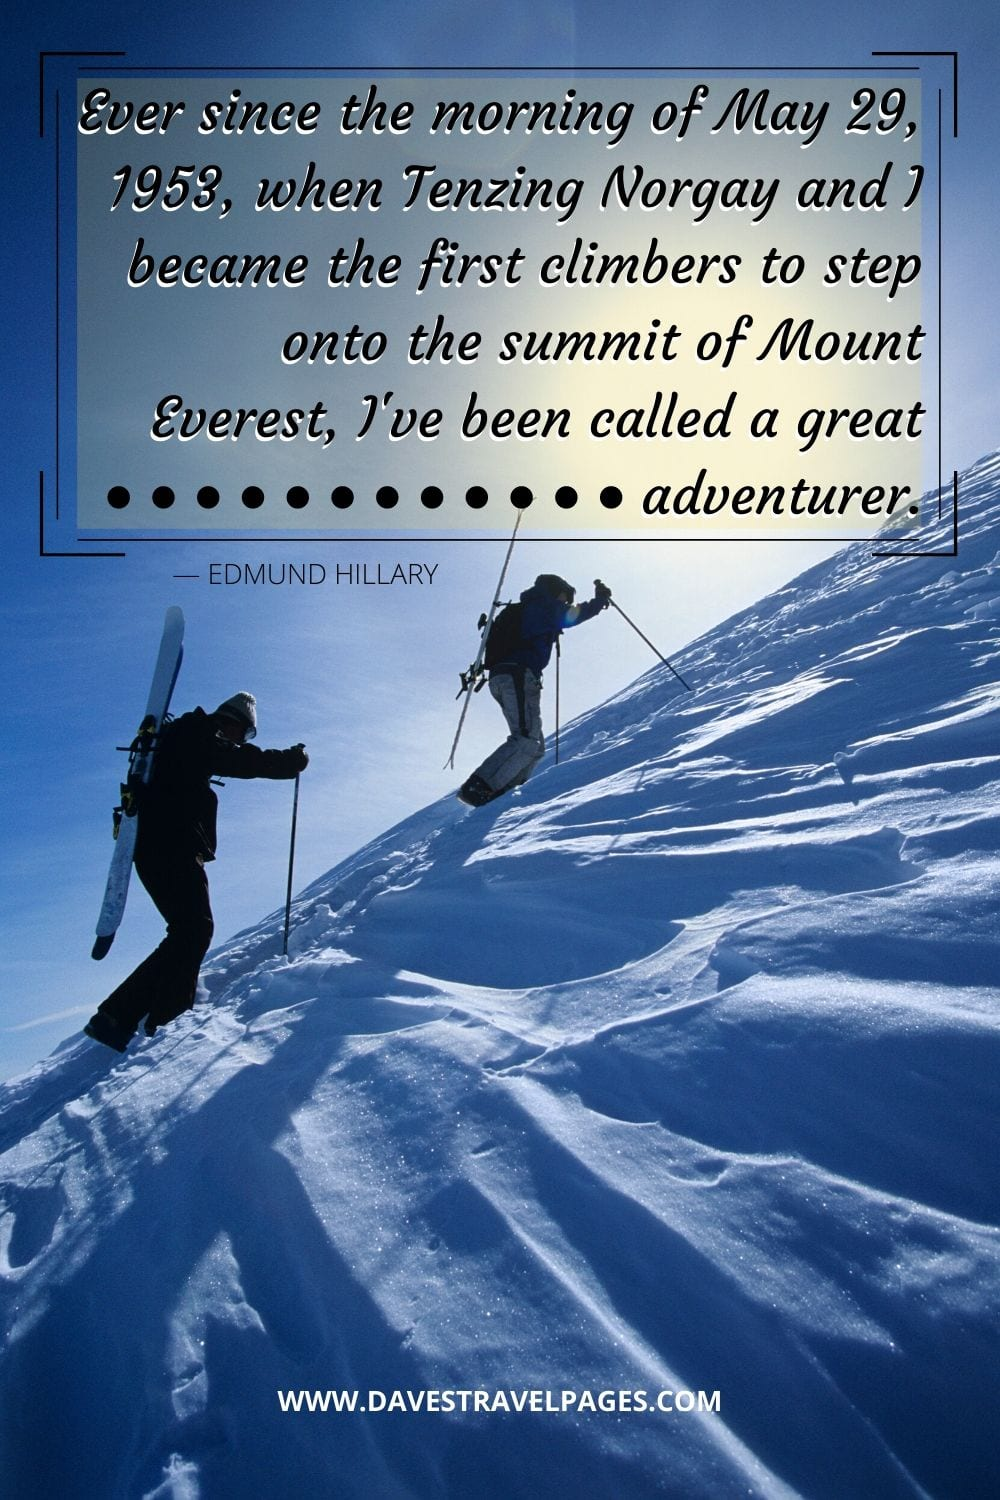 """Ever since the morning of May 29, 1953, when Tenzing Norgay and I became the first climbers to step onto the summit of Mount Everest, I've been called a great adventurer."" - Edmund Hillary Adventure Quote"